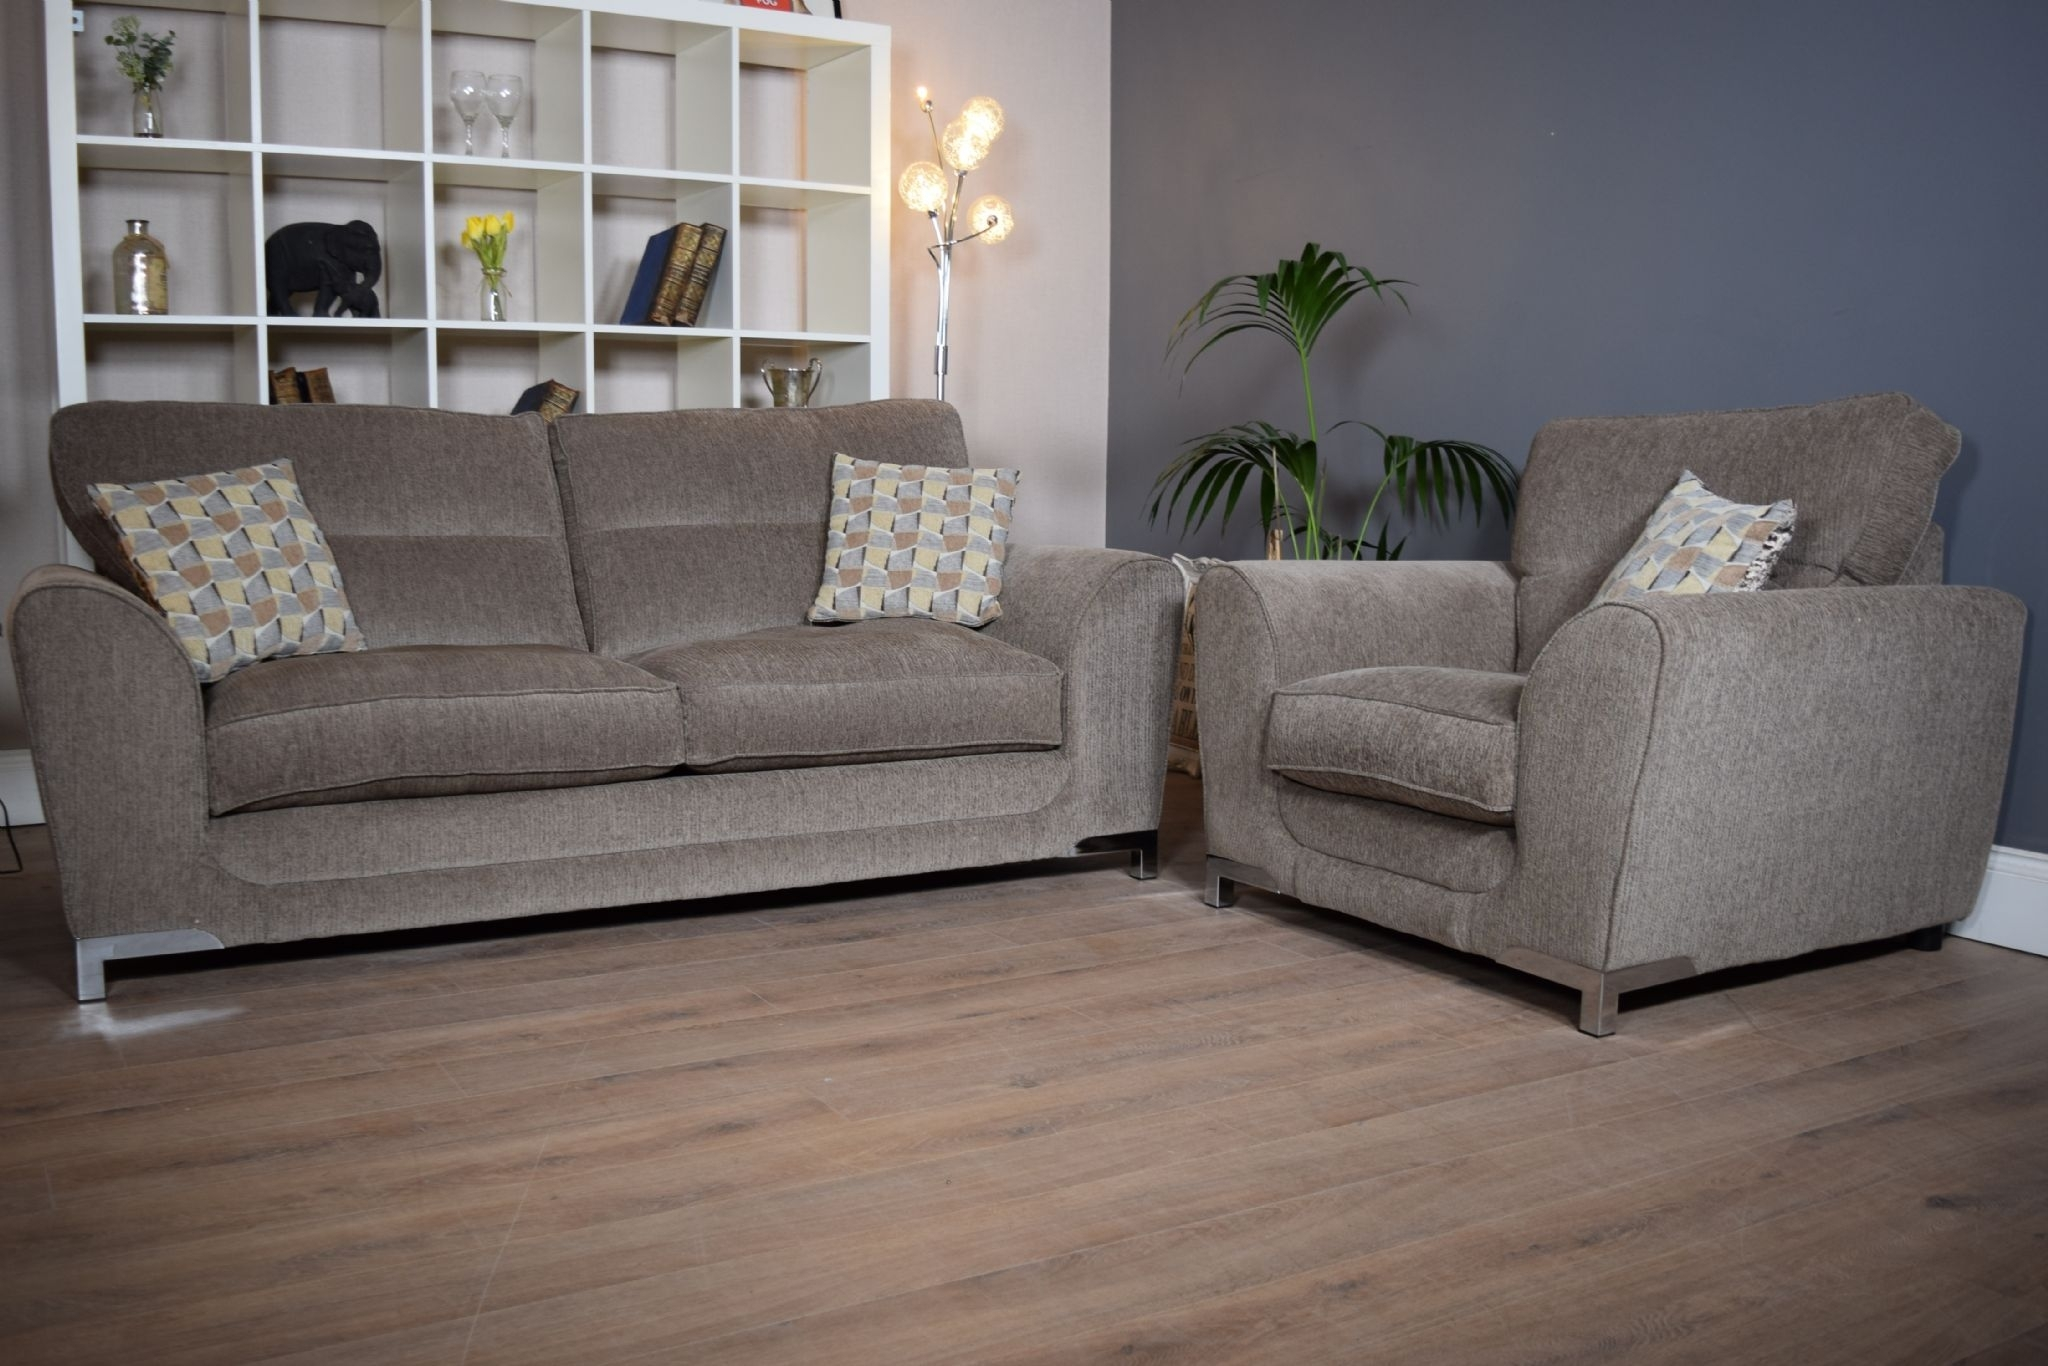 Set Nikki 3 Seater Sofa & Cuddle Chair Suite Set - Mocha Grey - Out within 3 Seater Sofas And Cuddle Chairs (Image 9 of 10)